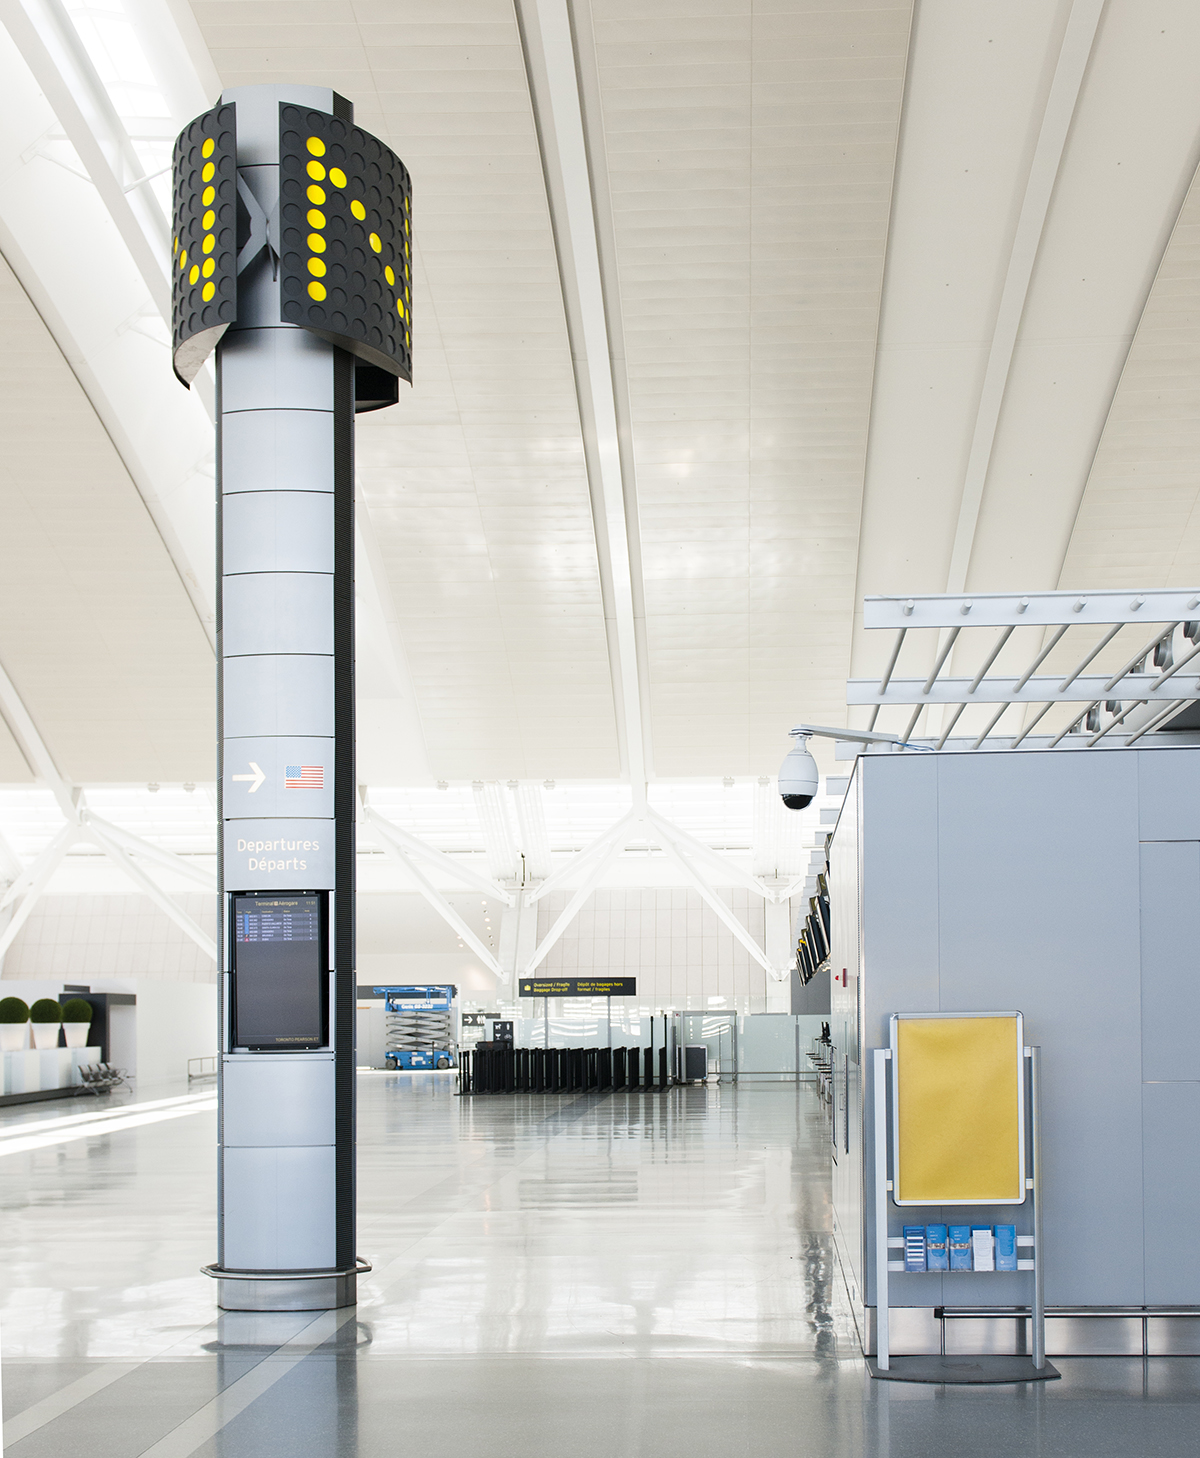 The Laird Co Pearson Airport Gate N Camera SEcurity Yellow Sign Architecture Interior Empty Design Avgeek YYZ Photography for site.jpg